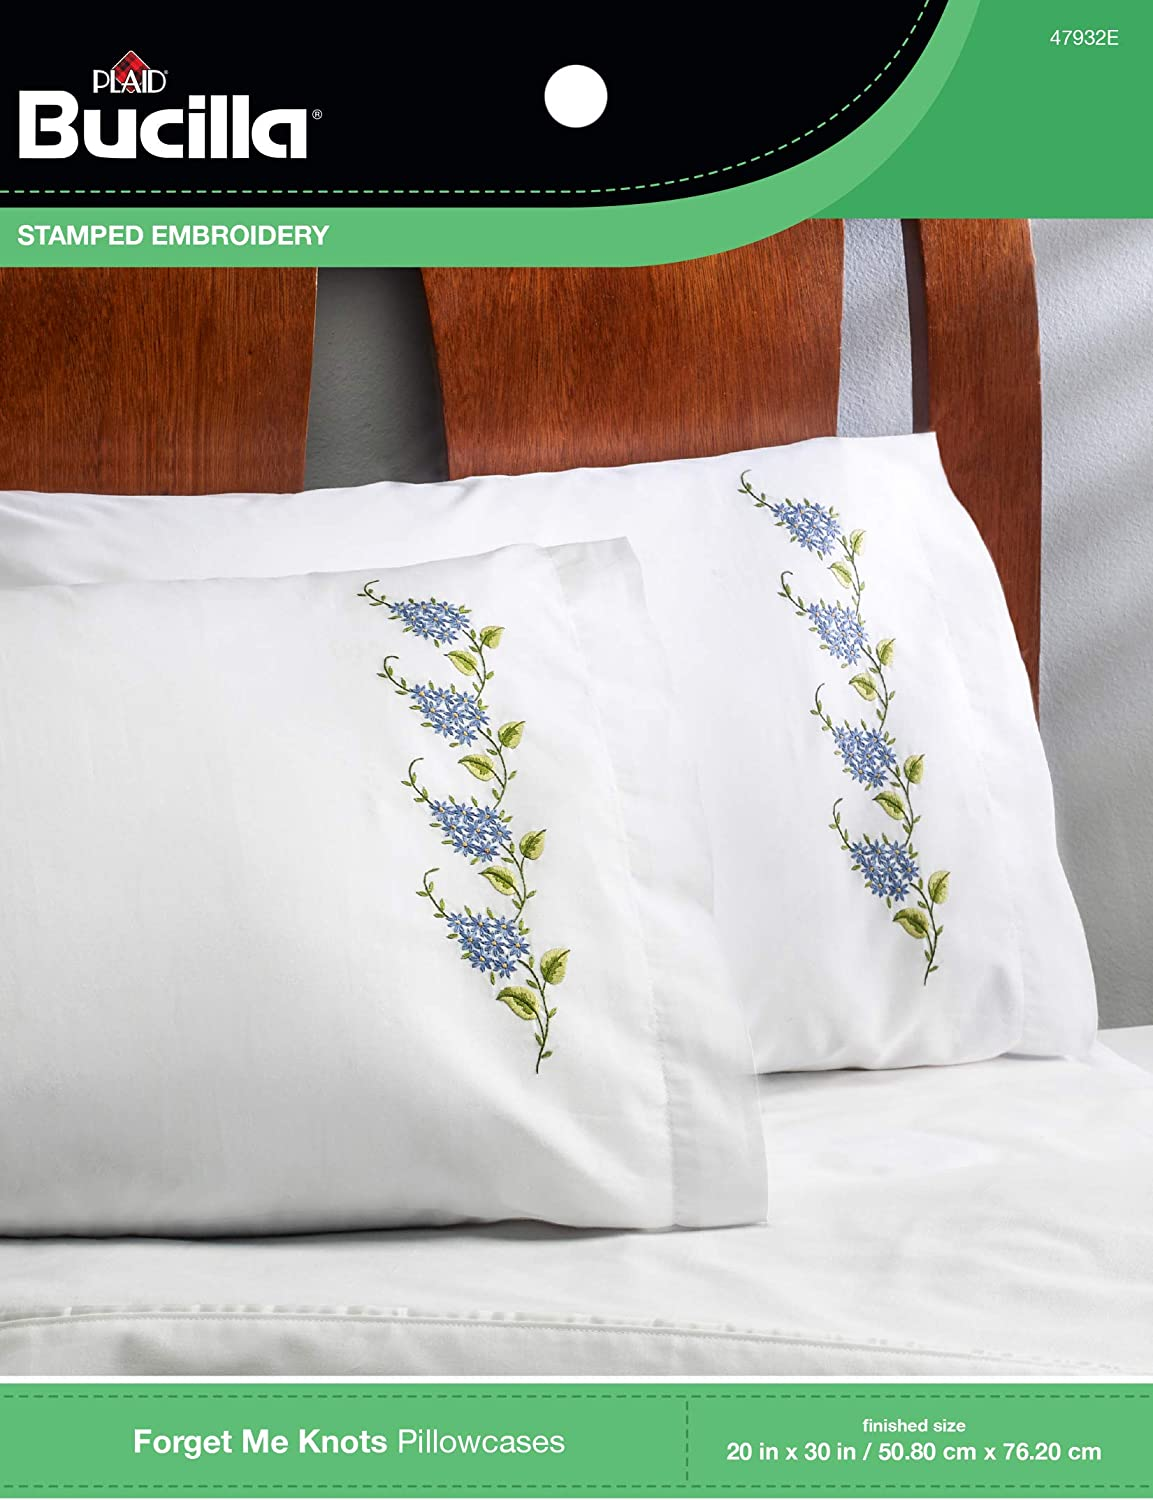 Bucilla Forget Me Knot Stamped Embroidery Pillowcase Kit